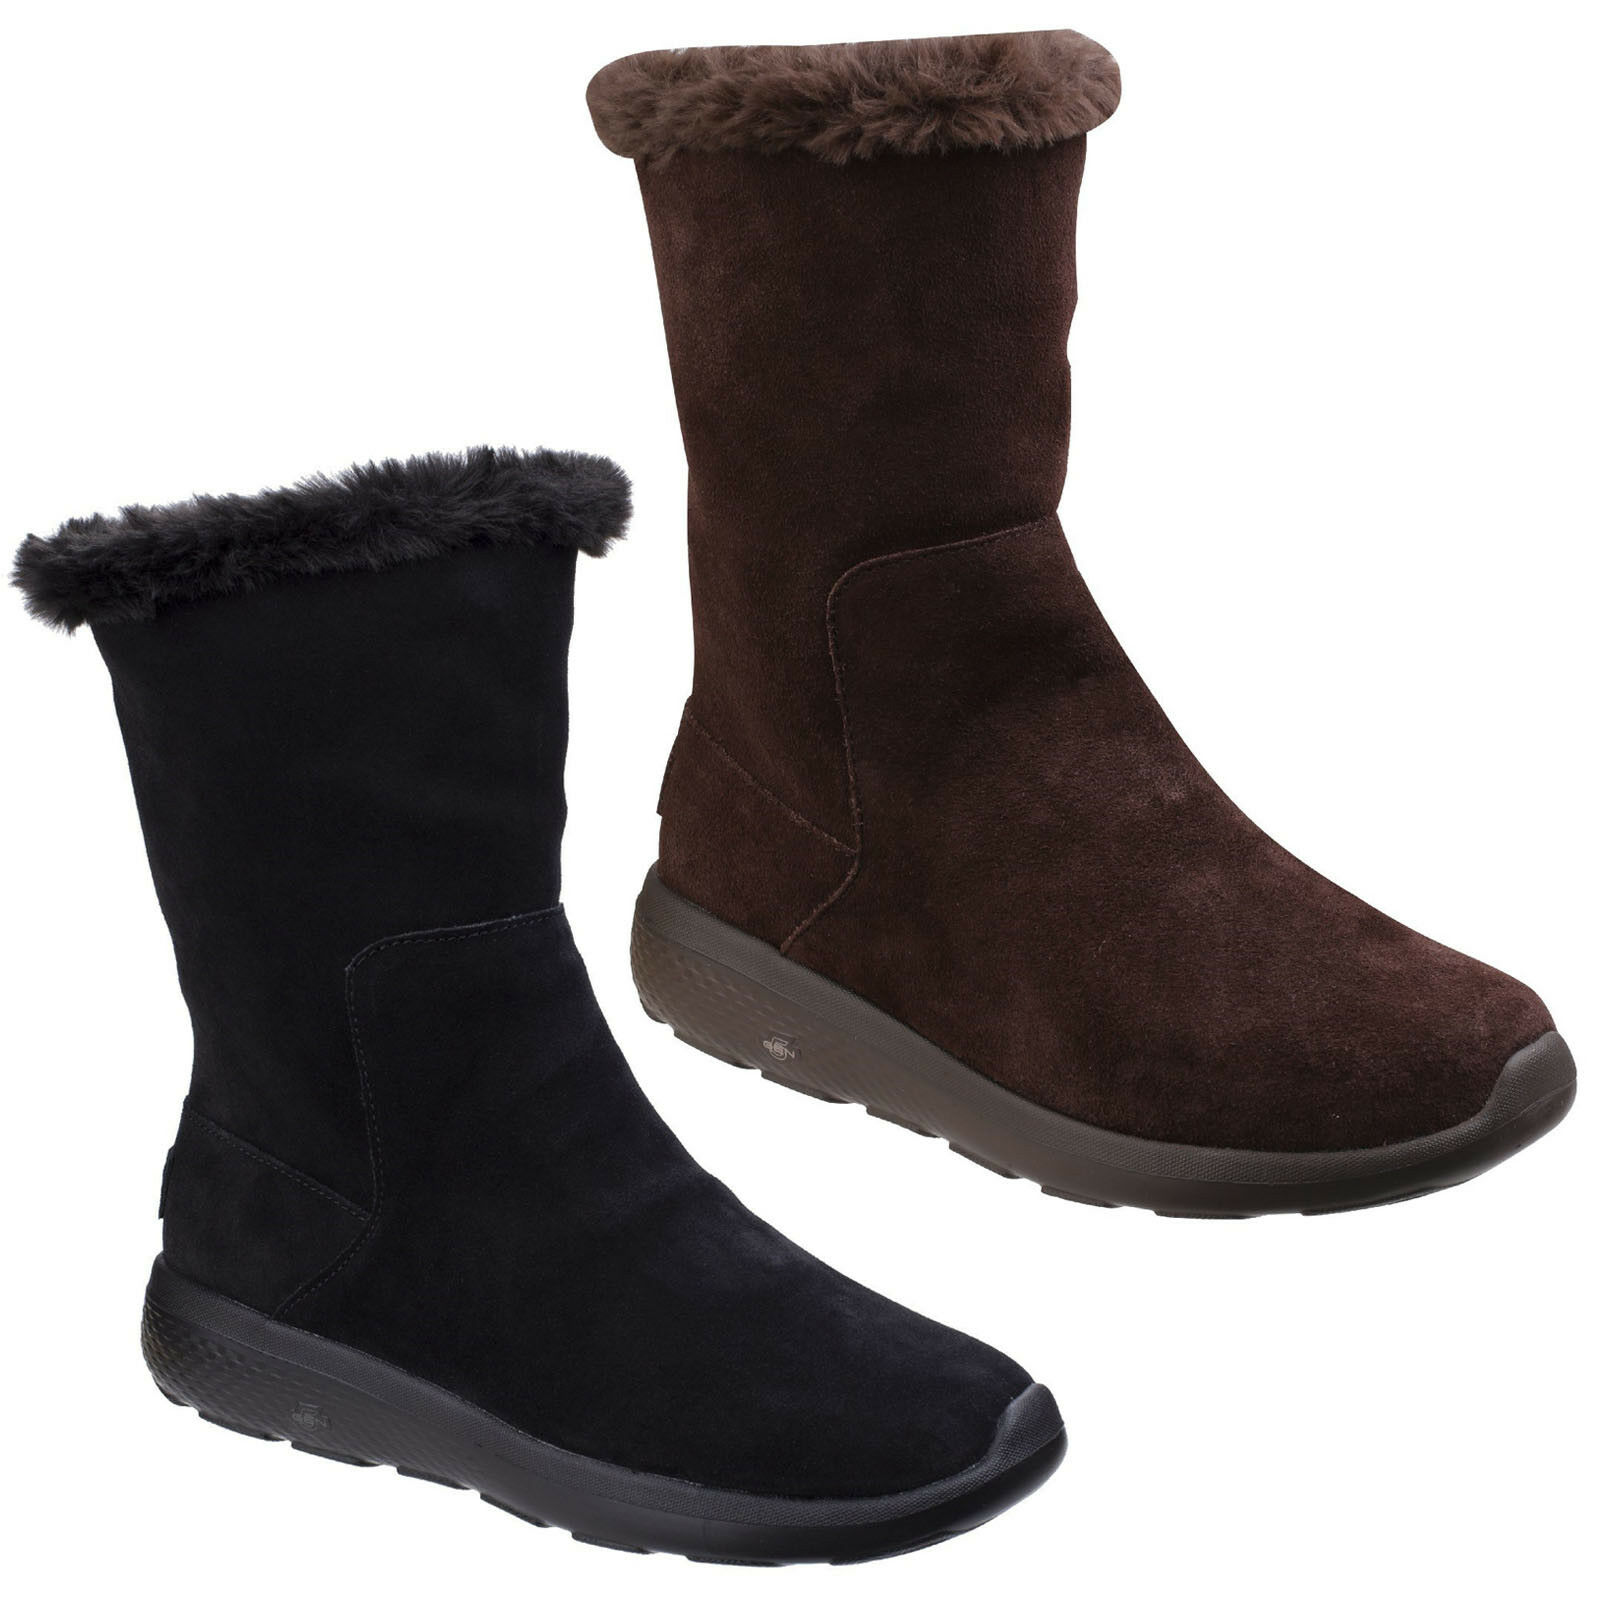 Skechers On The Go City 2 Appealing Boots Memory Foam Fashion Calf Shoes Womens